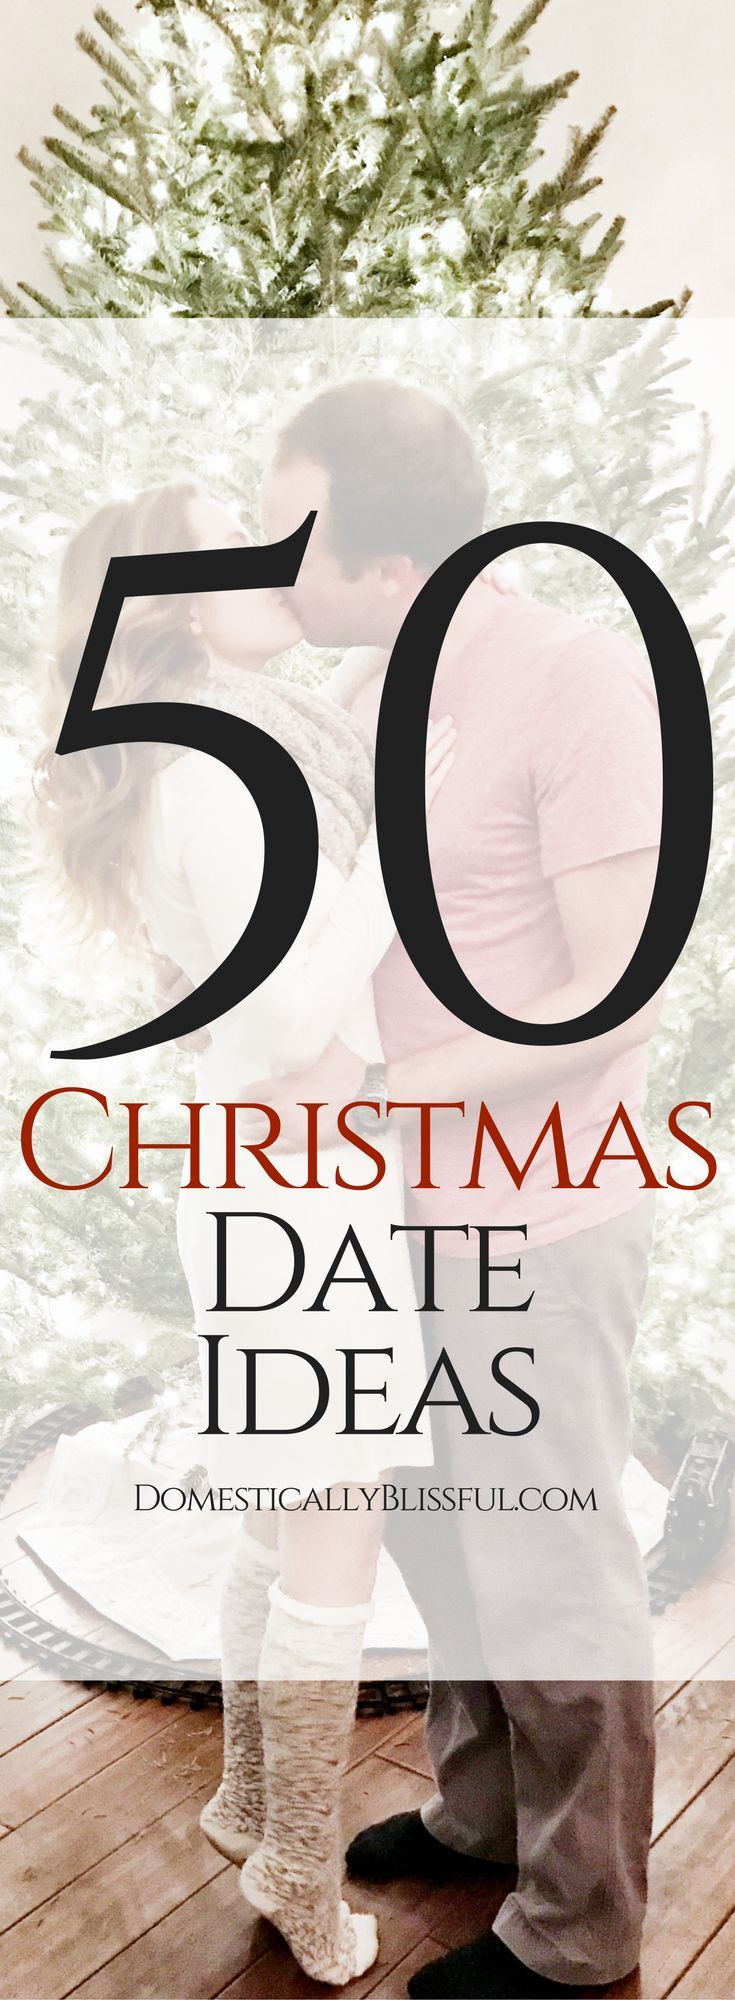 A fun & romantic collection of Christmas date ideas for your holiday season!   Christmas ideas   Christmas bucket list   Christmas season   Christmas traditions   Holiday date ideas   seasonal date ideas    holiday traditions   Holiday ideas   holiday bucket list   date ideas for couples   couple date ideas   Christmas couple date ideas   Christmas dates for couples   holiday date for couples   married life dates   engaged dates   date ideas for couples